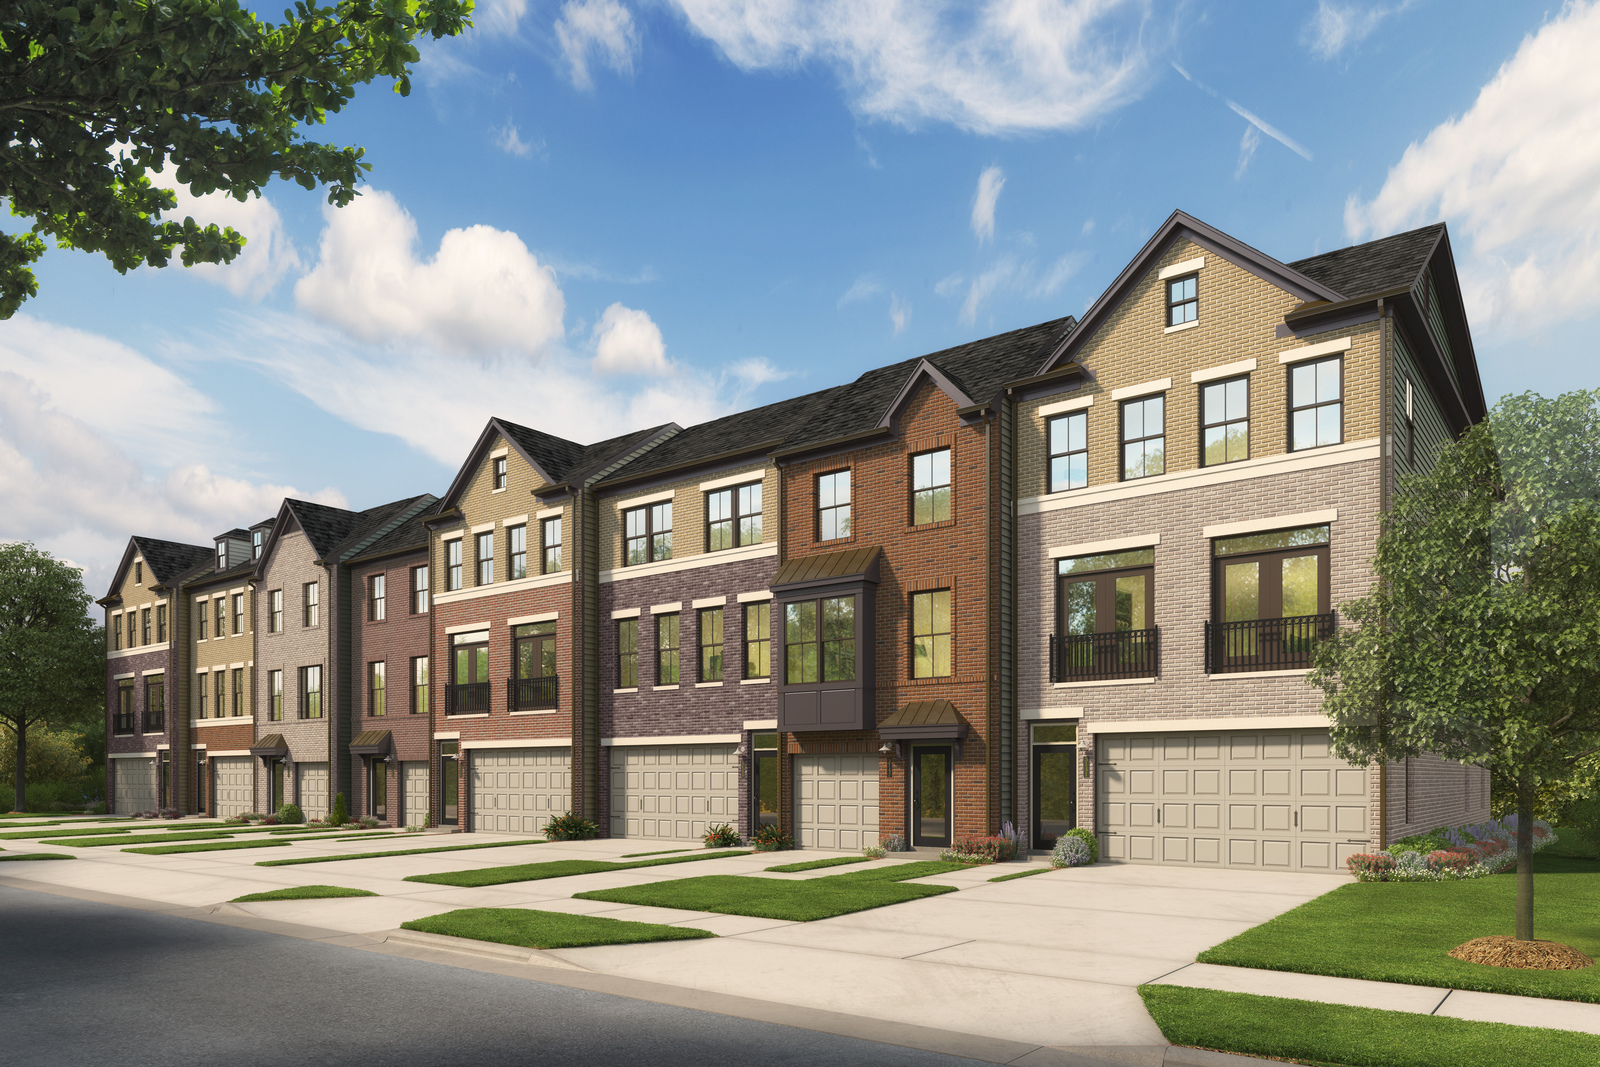 New luxury homes for sale at metro row in fairfax va for Modern homes for sale in virginia